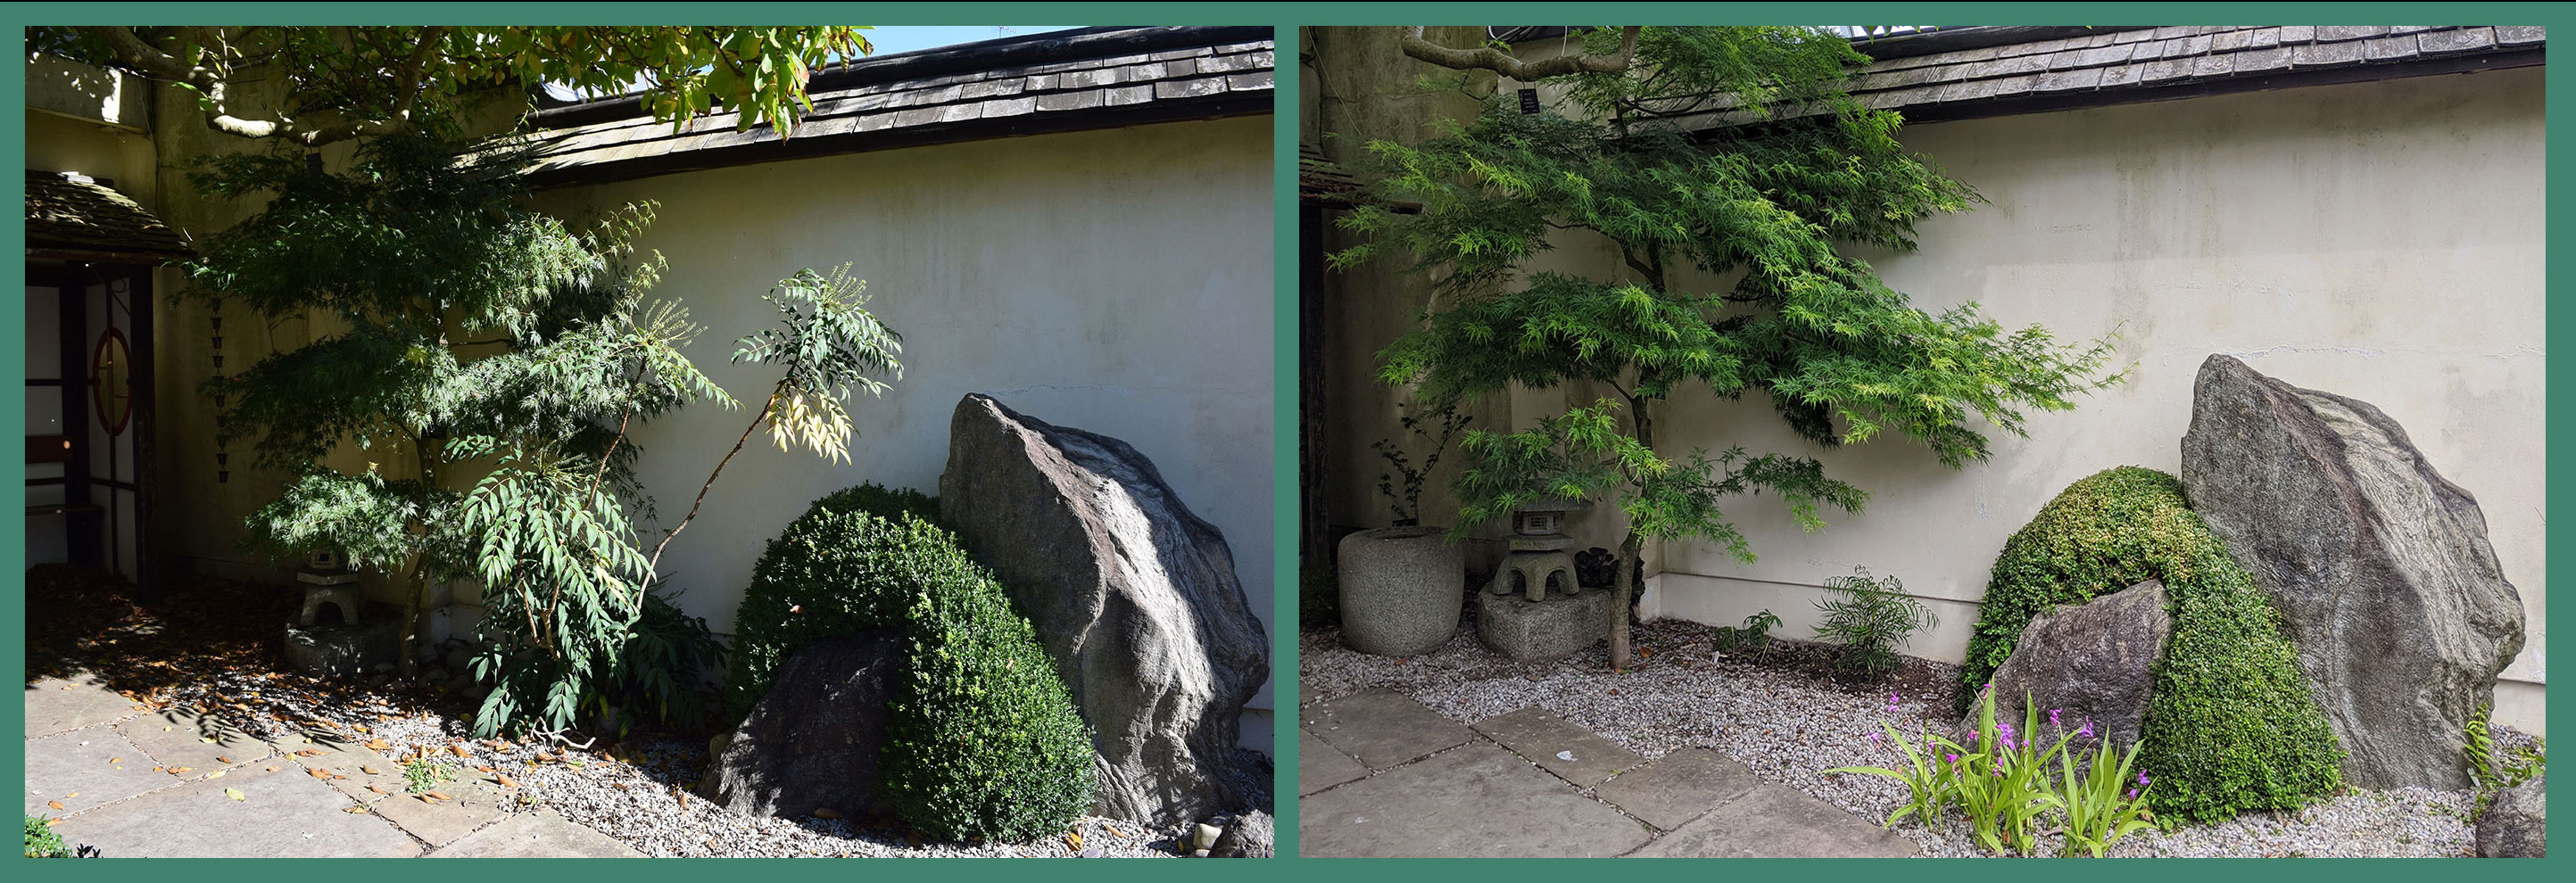 View of part of a boundary wall with stone work, <i>Berberis</i> sp., and <i>Acer palmatum</i>.